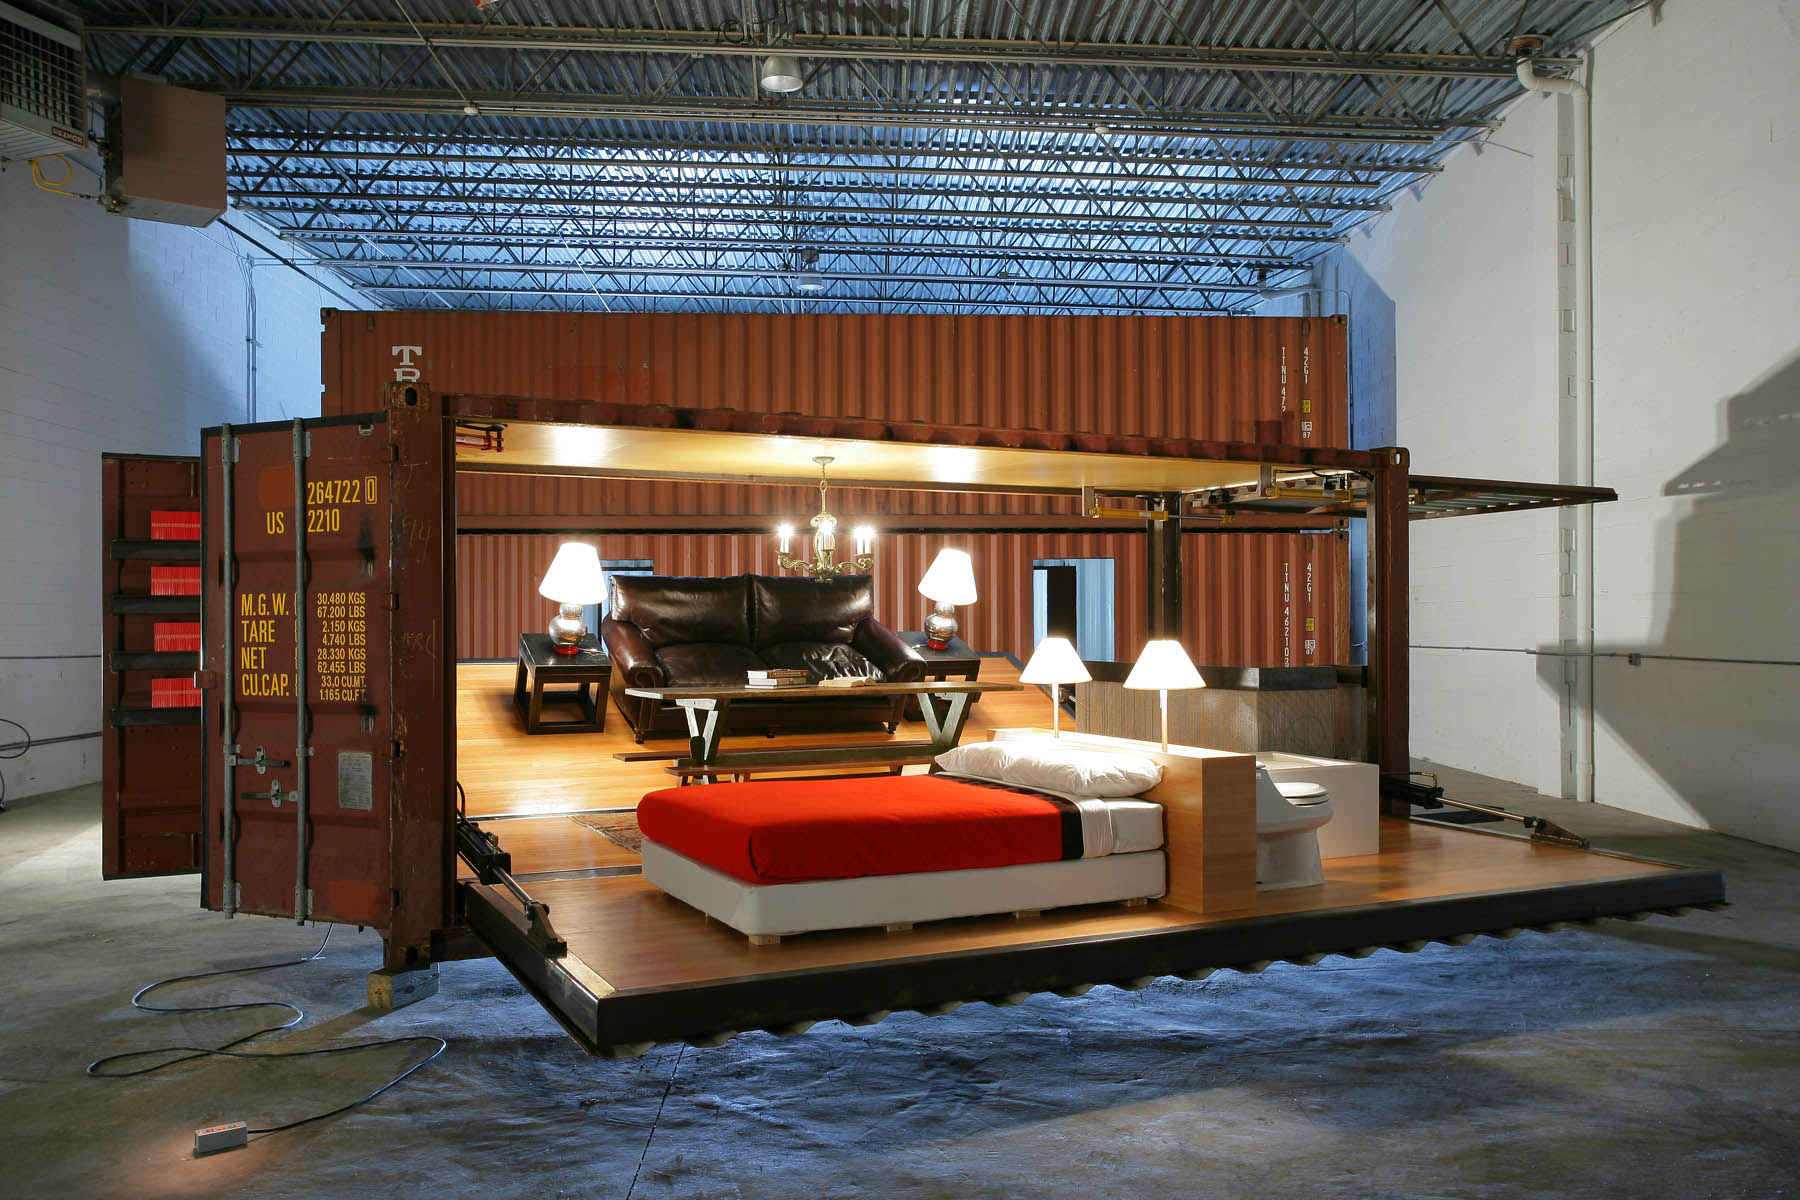 Design Container Haus Turning To Smaller Compact Living Quarters Focus On Shipping